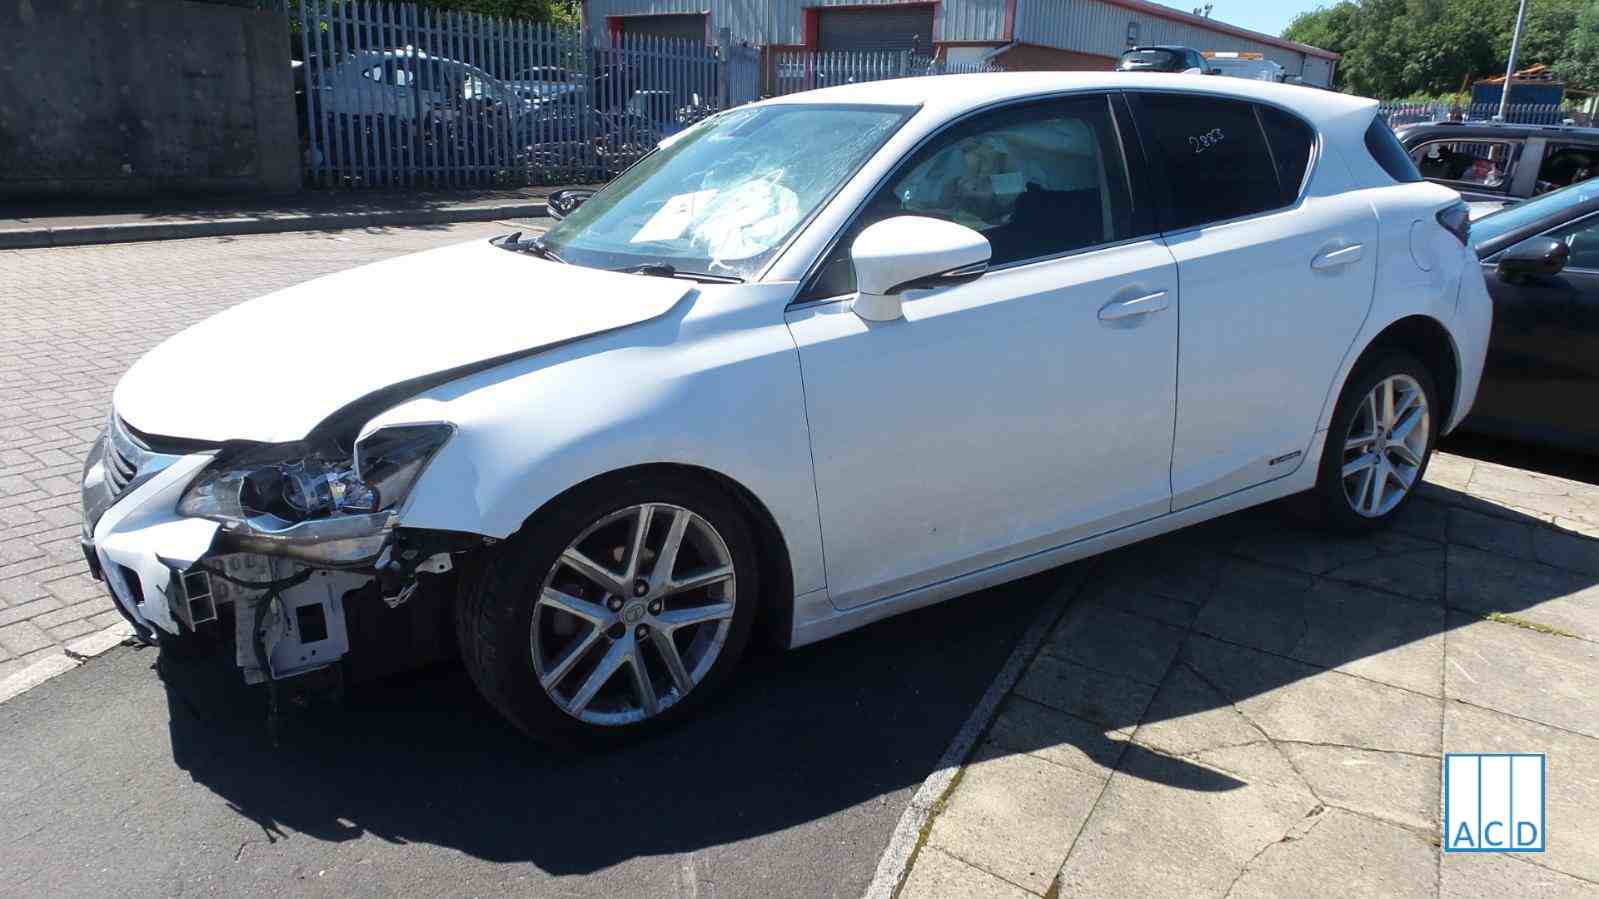 Lexus CT 200H 1.8L Hybrid 1-Speed Automatic 2014 #2883 01